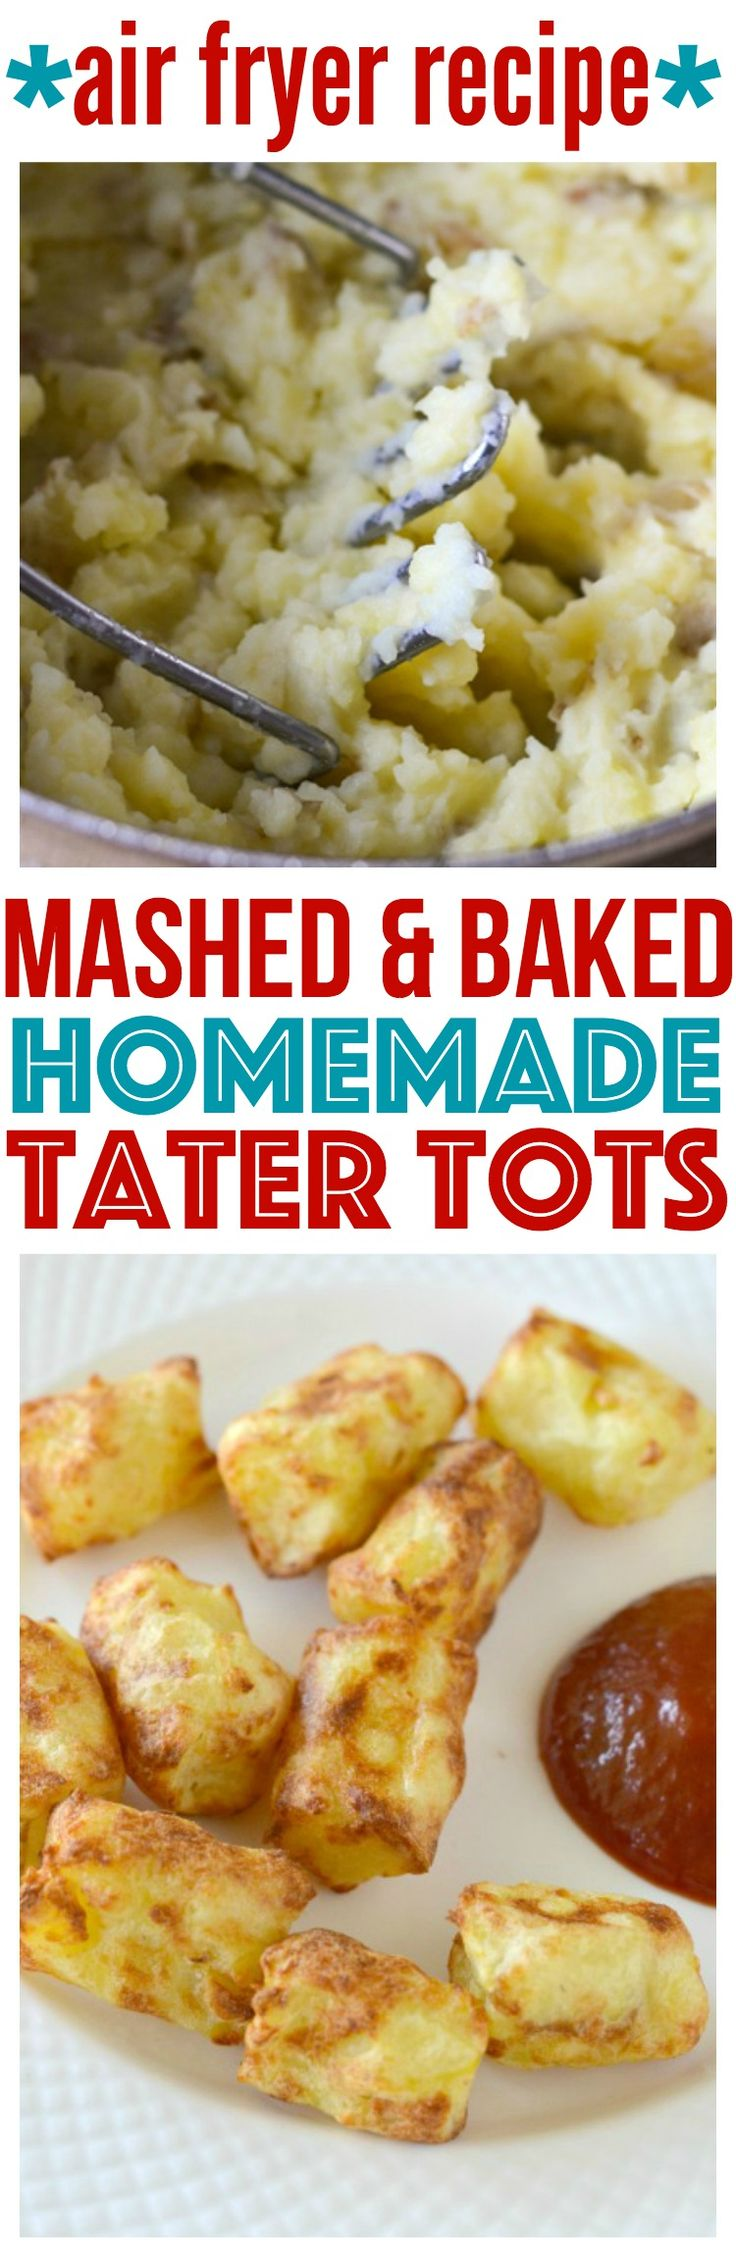 Homemade Mashed Potato Tater Tots can be baked, fried or even cooked in an air fryer. They're the best toddler snack or with lunch dinner. via @CourtneysSweets